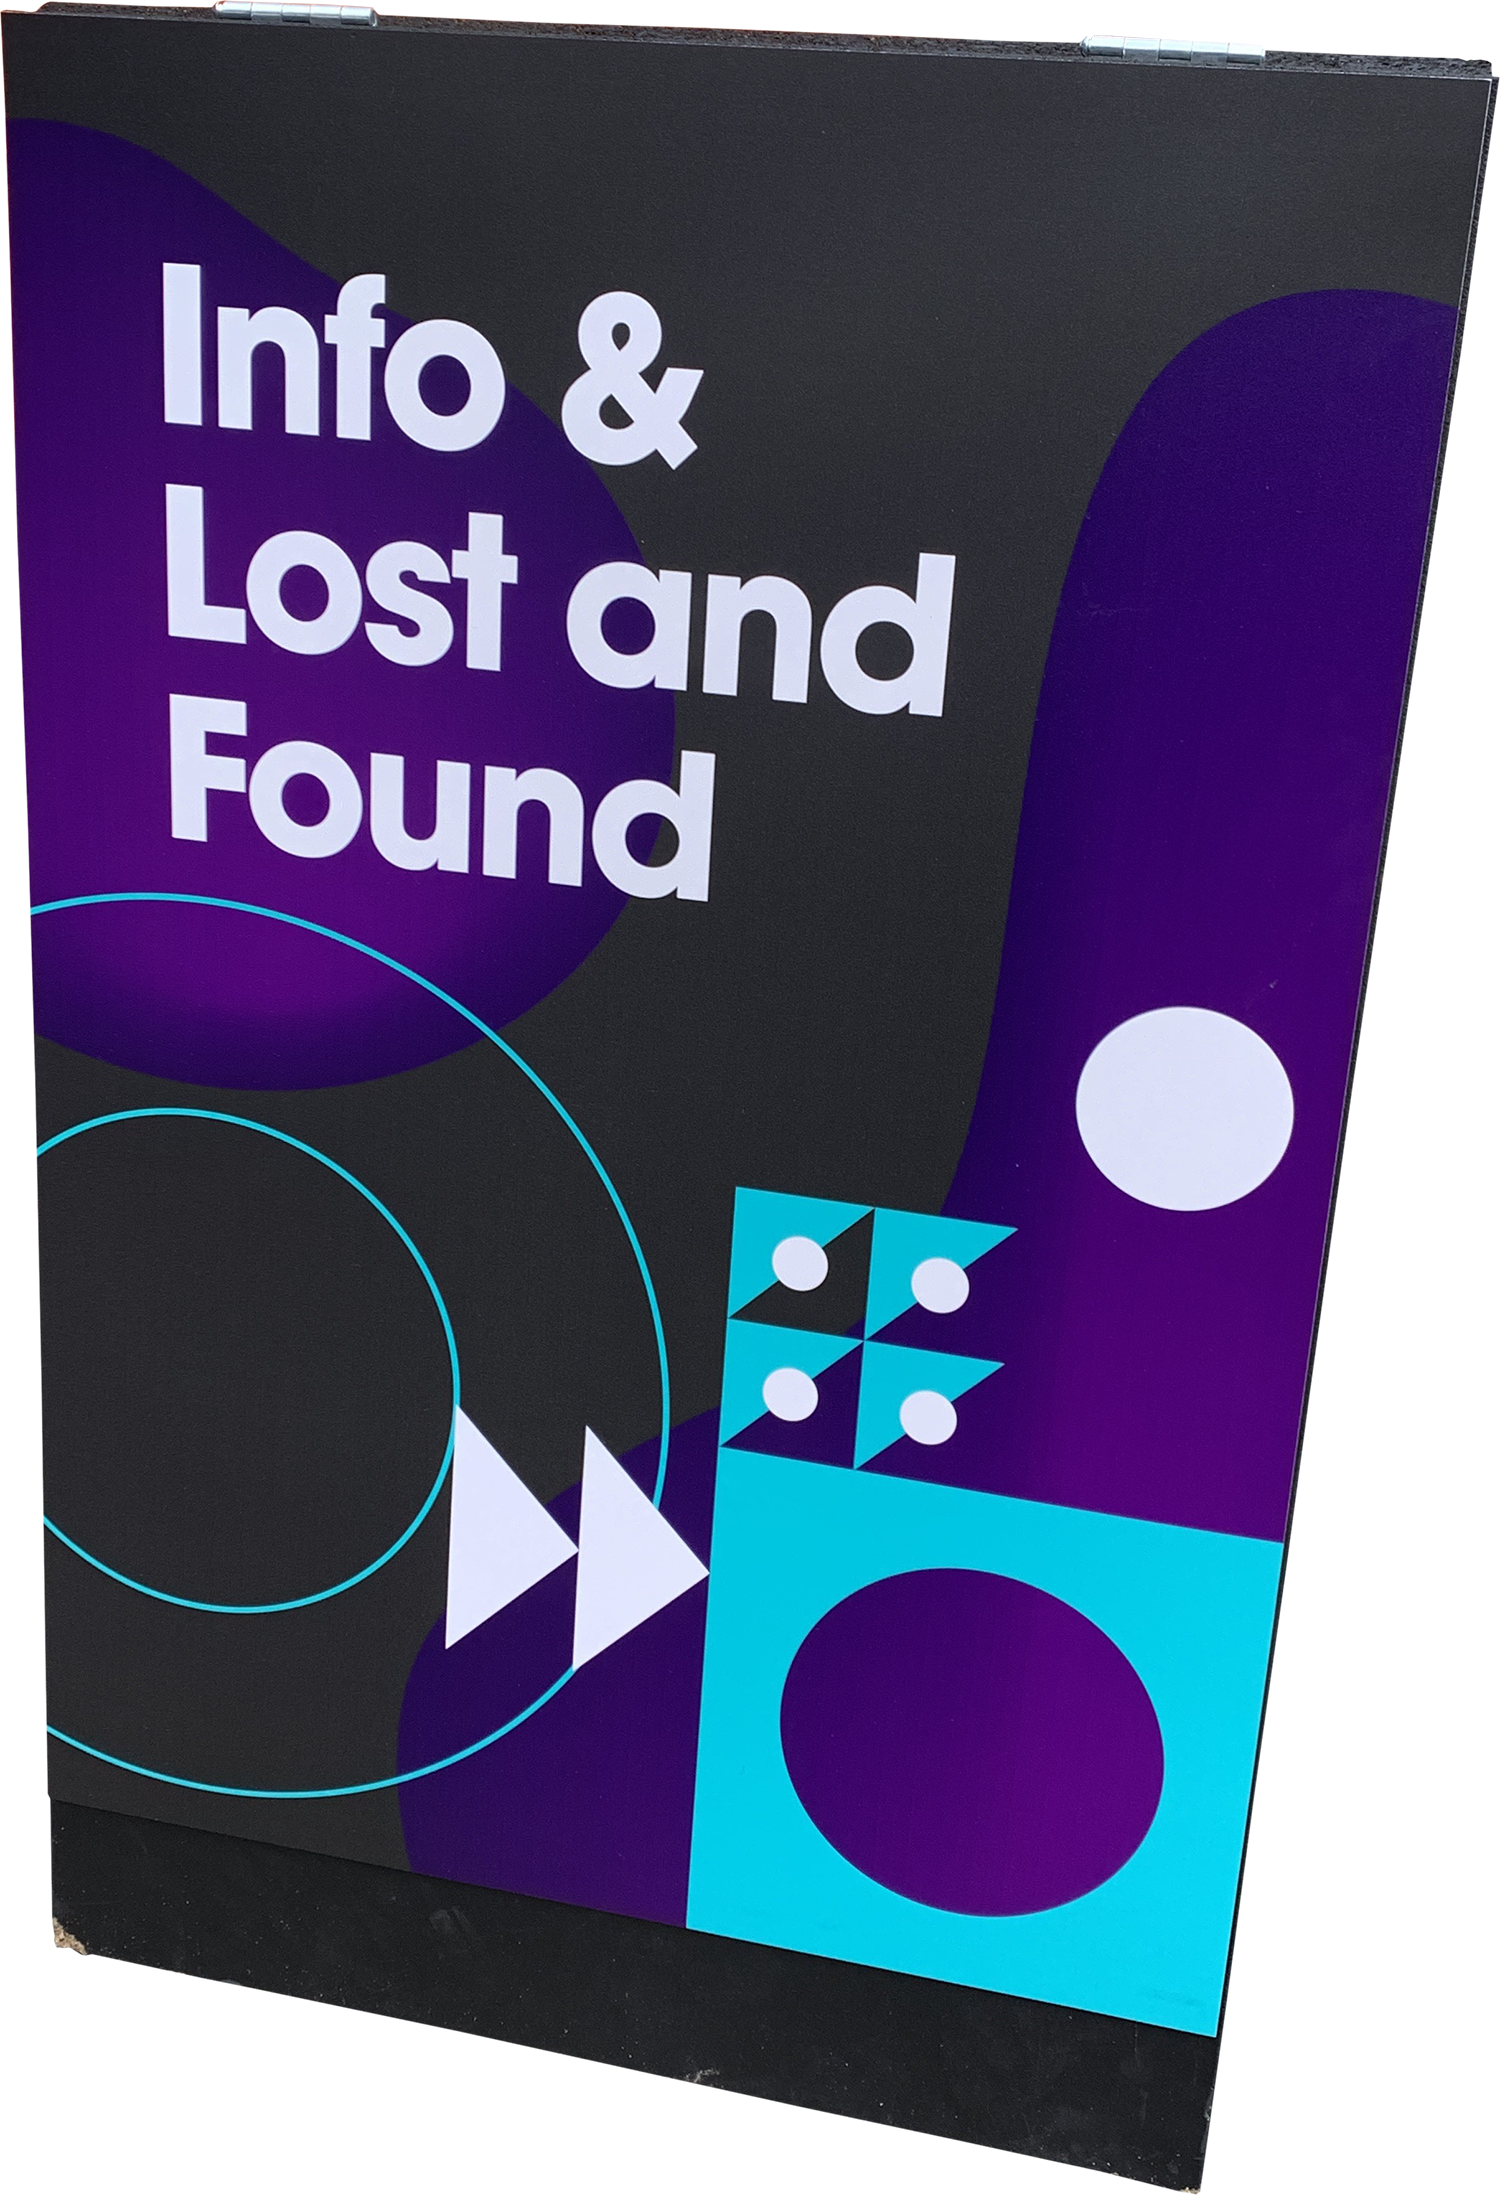 TNW 2019 Rhapsody Review, info & lost and Found